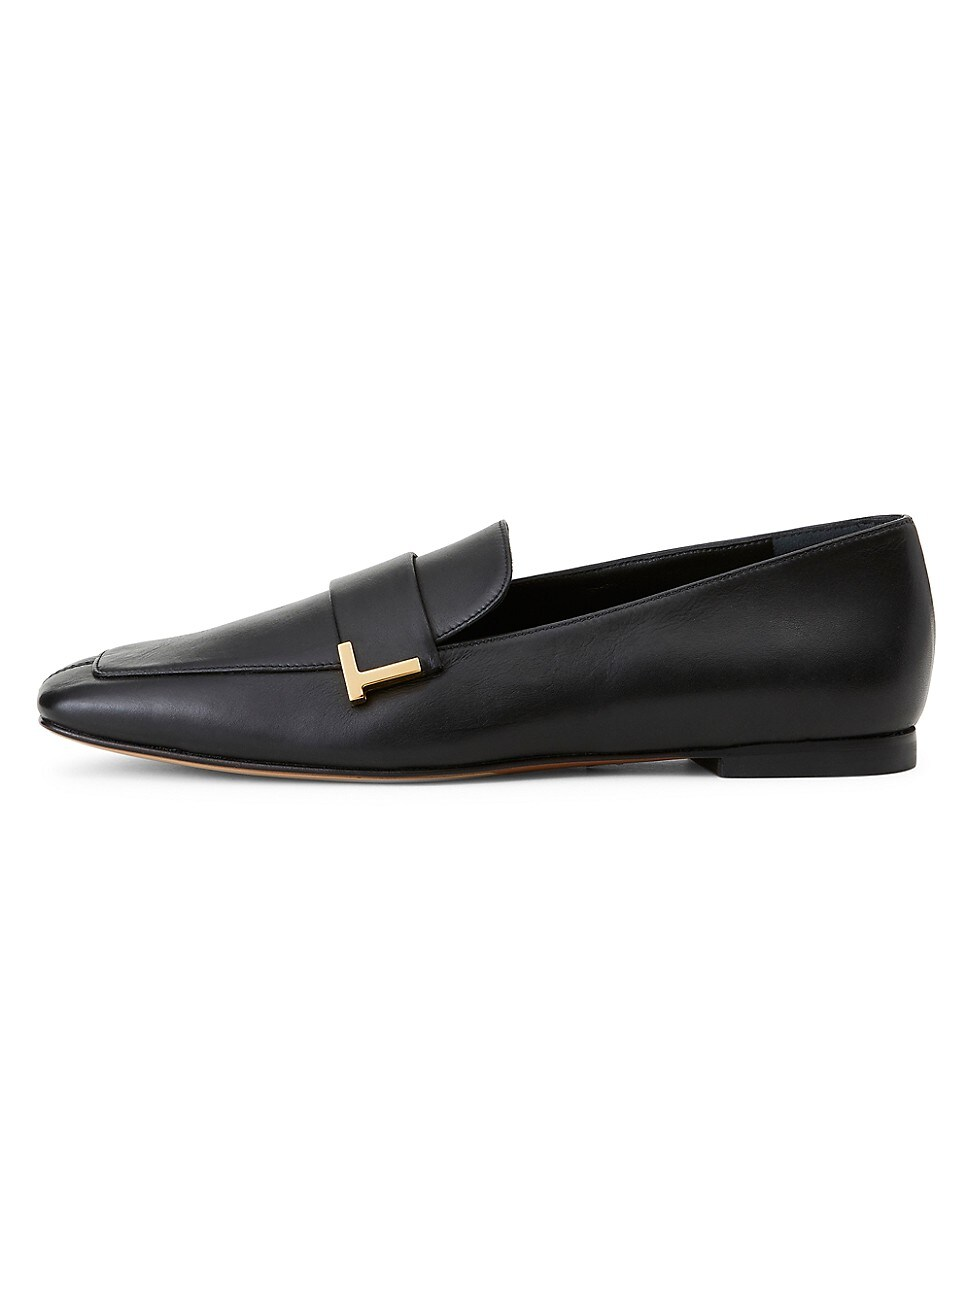 Lafayette 148 WOMEN'S EVE SQUARE-TOE LEATHER LOAFERS